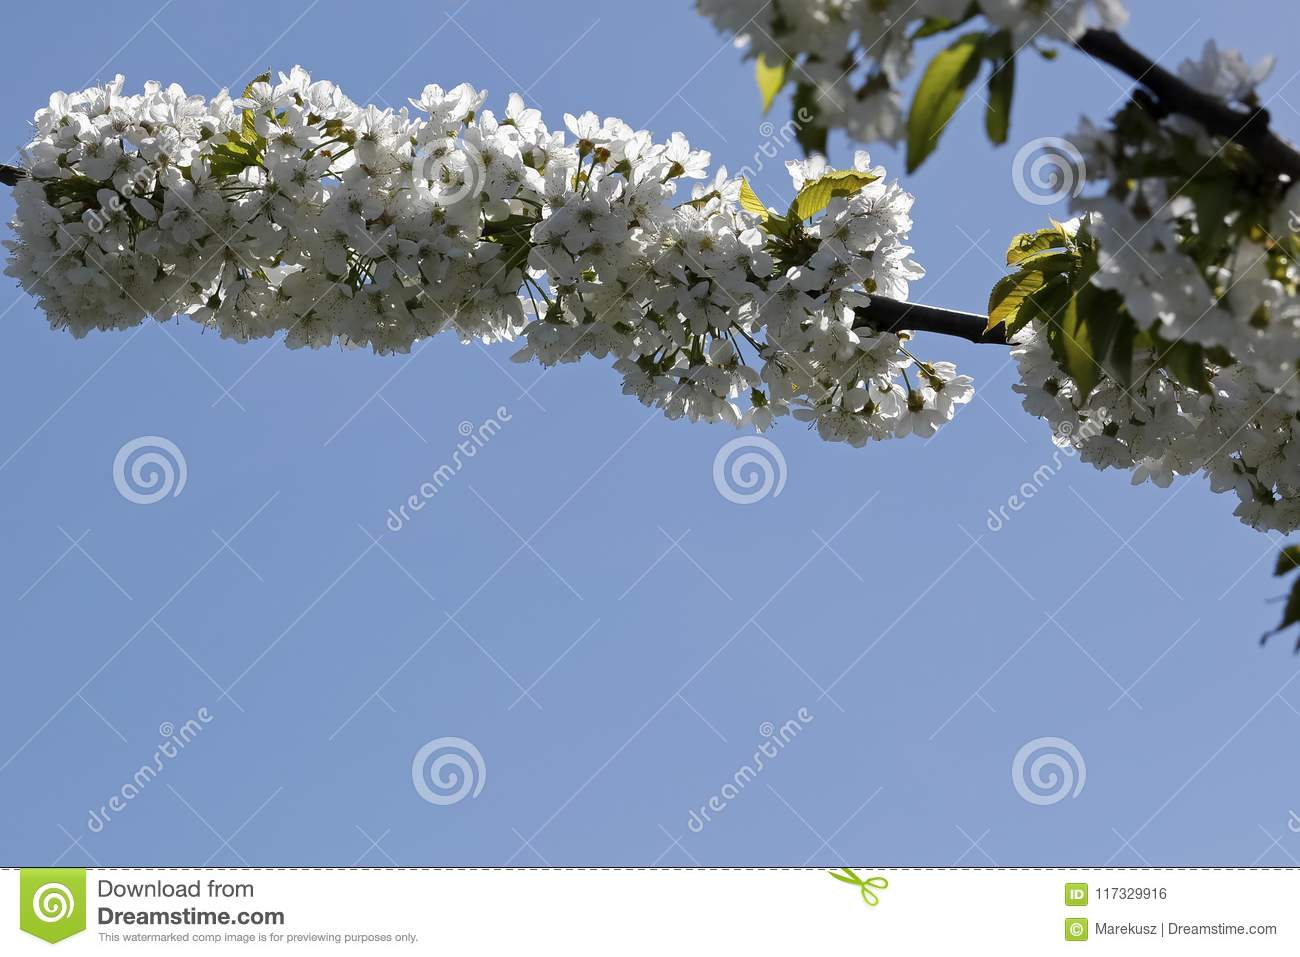 Flowering Branches Of Fruit Trees Stock Photo Image Of Daylight